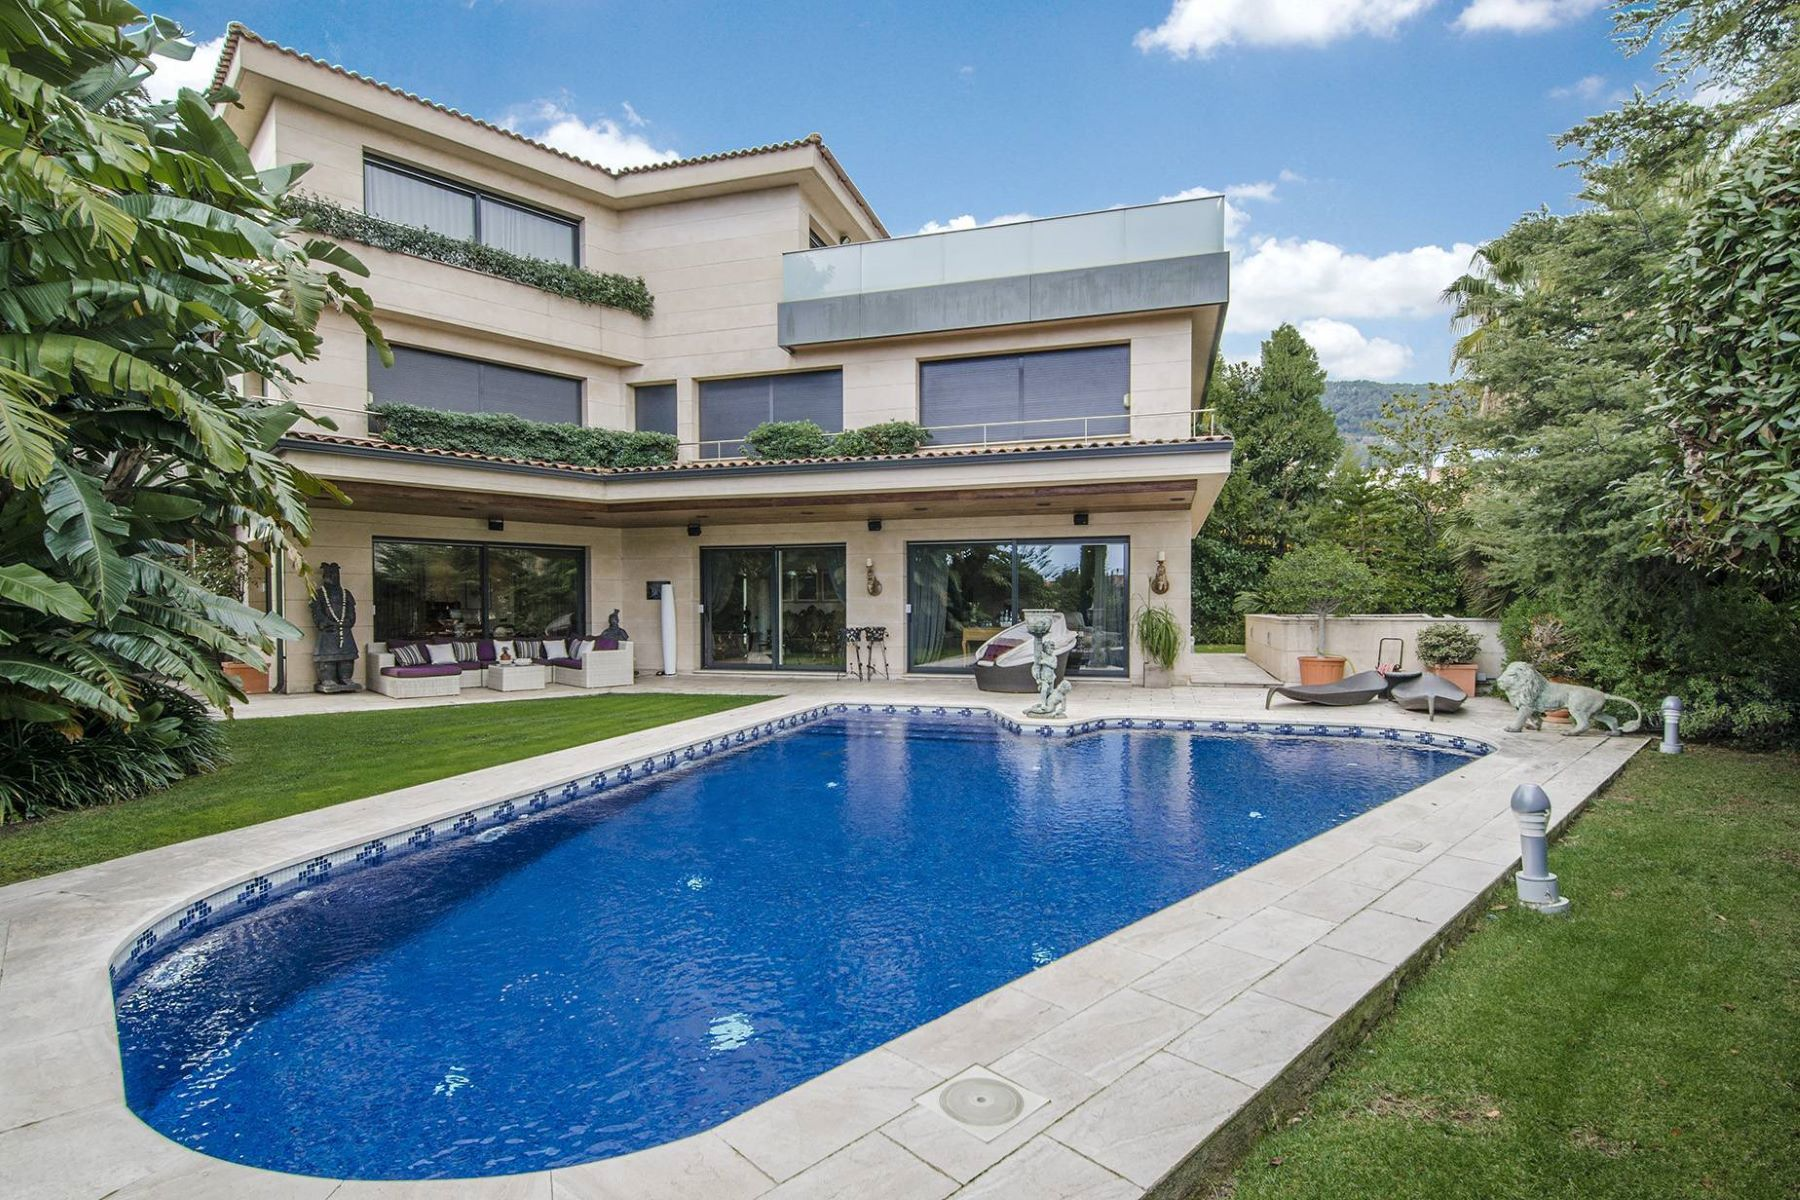 Villa per Vendita alle ore House for Sale in Pedralbes Barcelona City, Barcellona, 08034 Spagna